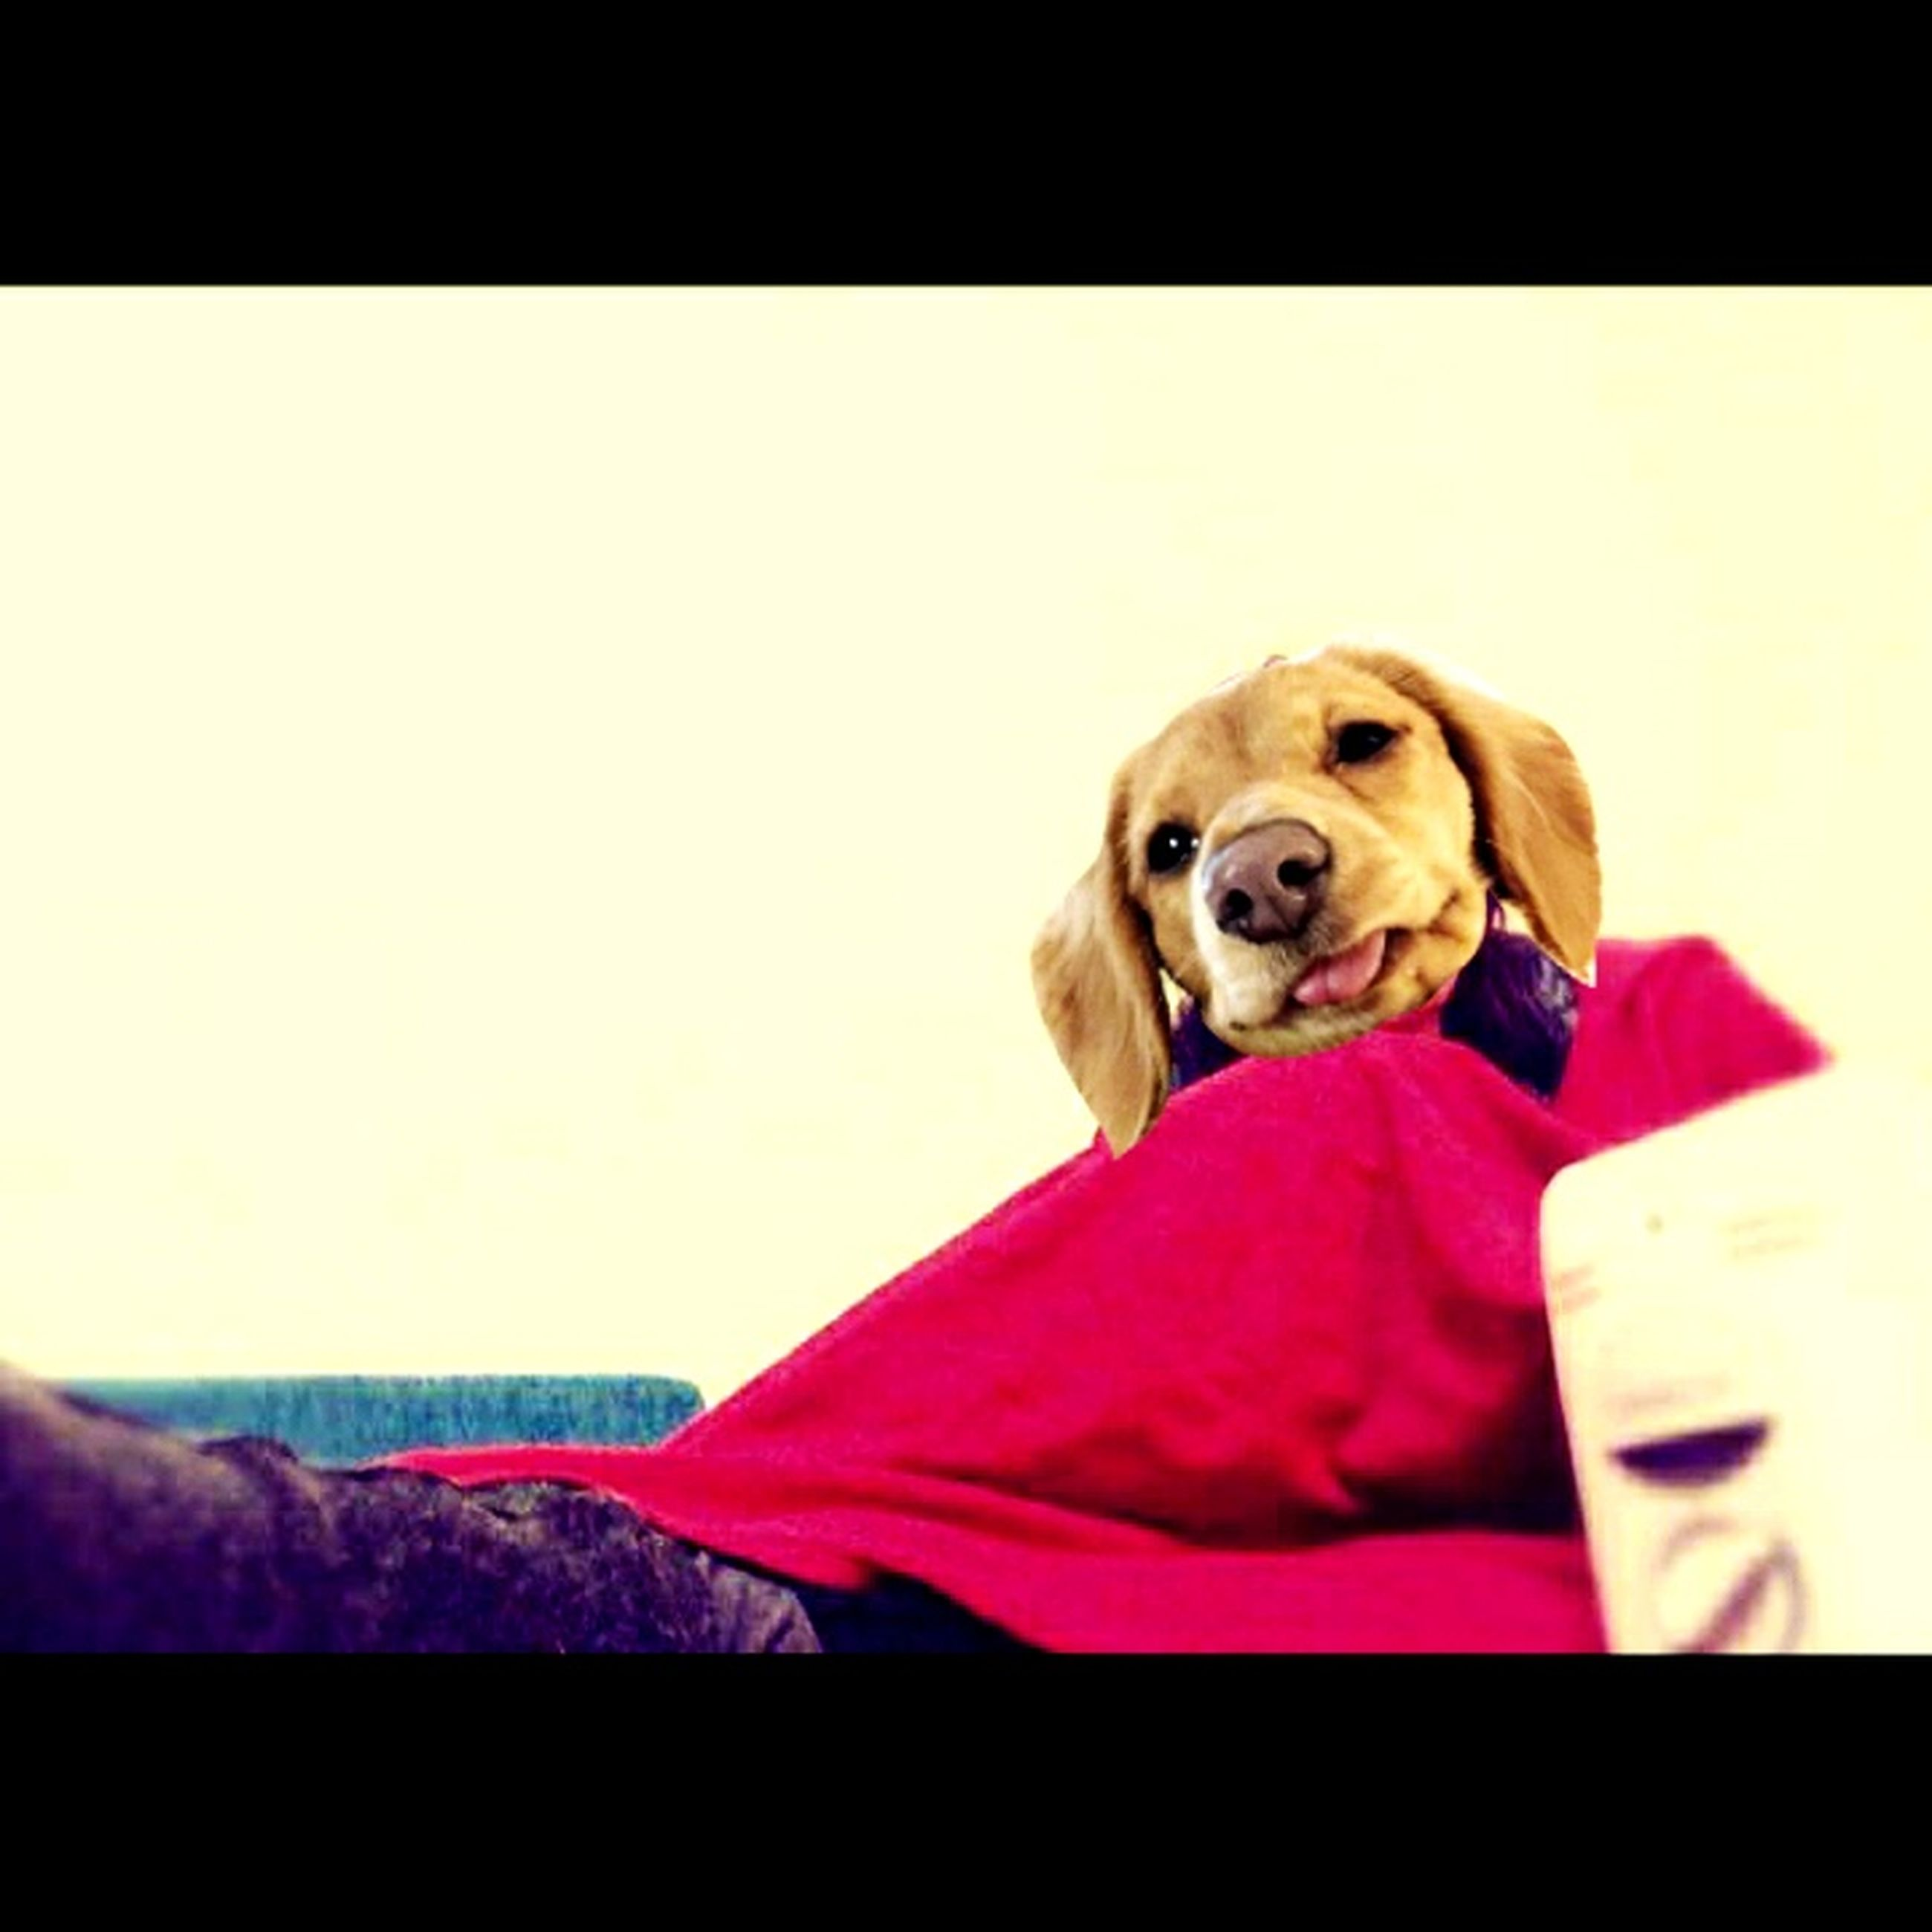 dog, pets, indoors, domestic animals, one animal, portrait, animal themes, transfer print, copy space, looking at camera, auto post production filter, sitting, mammal, home interior, red, cute, relaxation, front view, close-up, studio shot